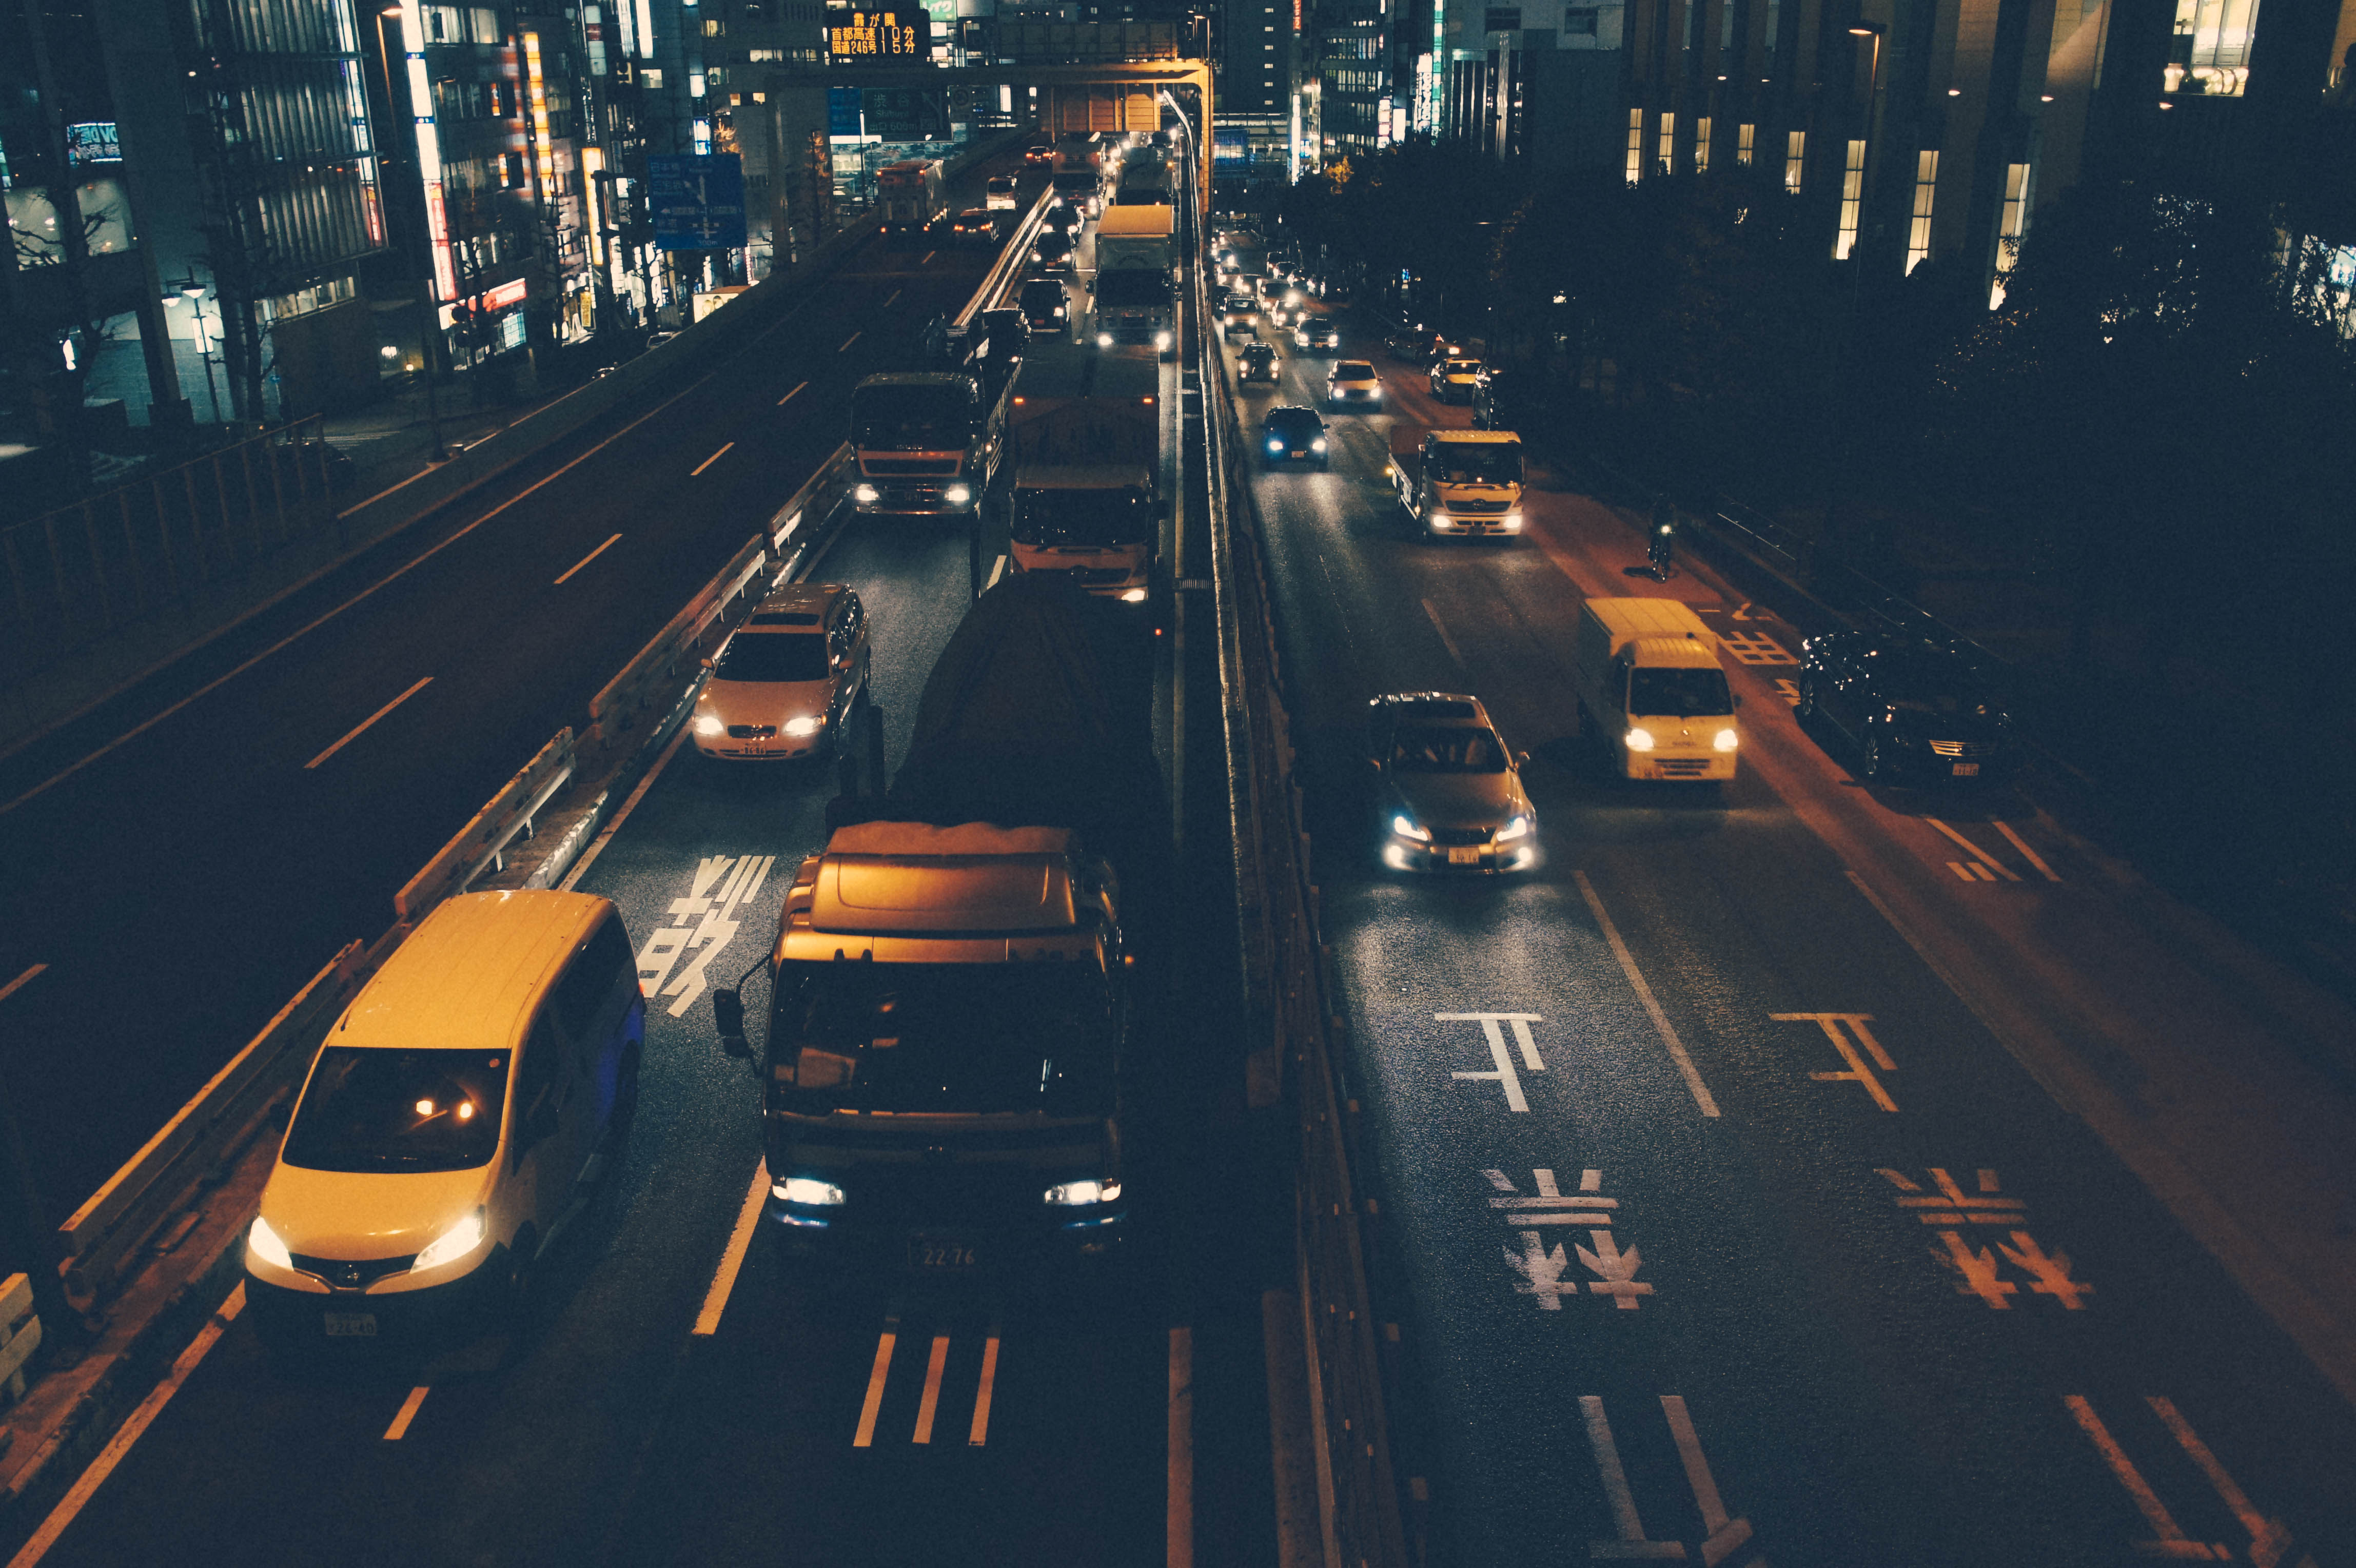 Busy Freeway at Night, Automobiles, Freeway, Headlights, Highway, HQ Photo